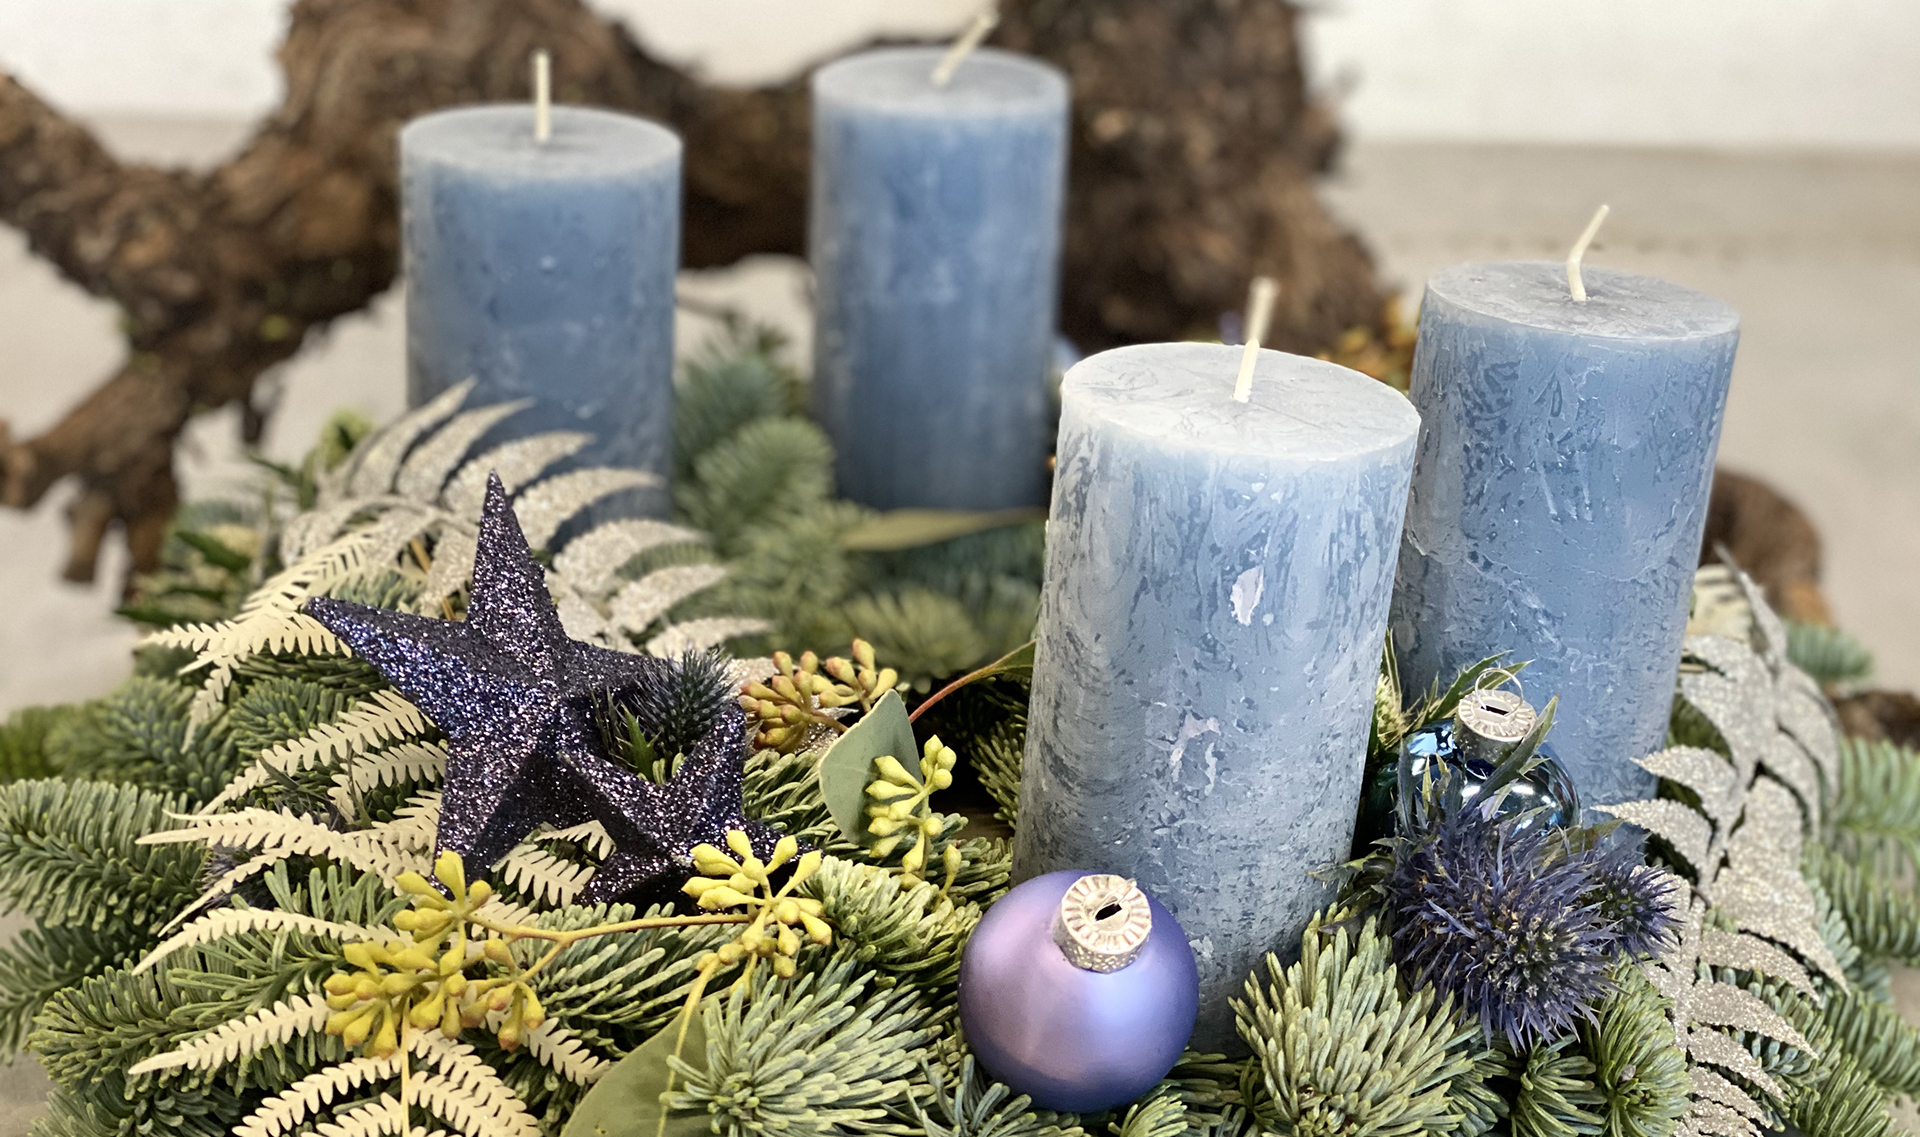 myFlowers_Adventkranz2020_2